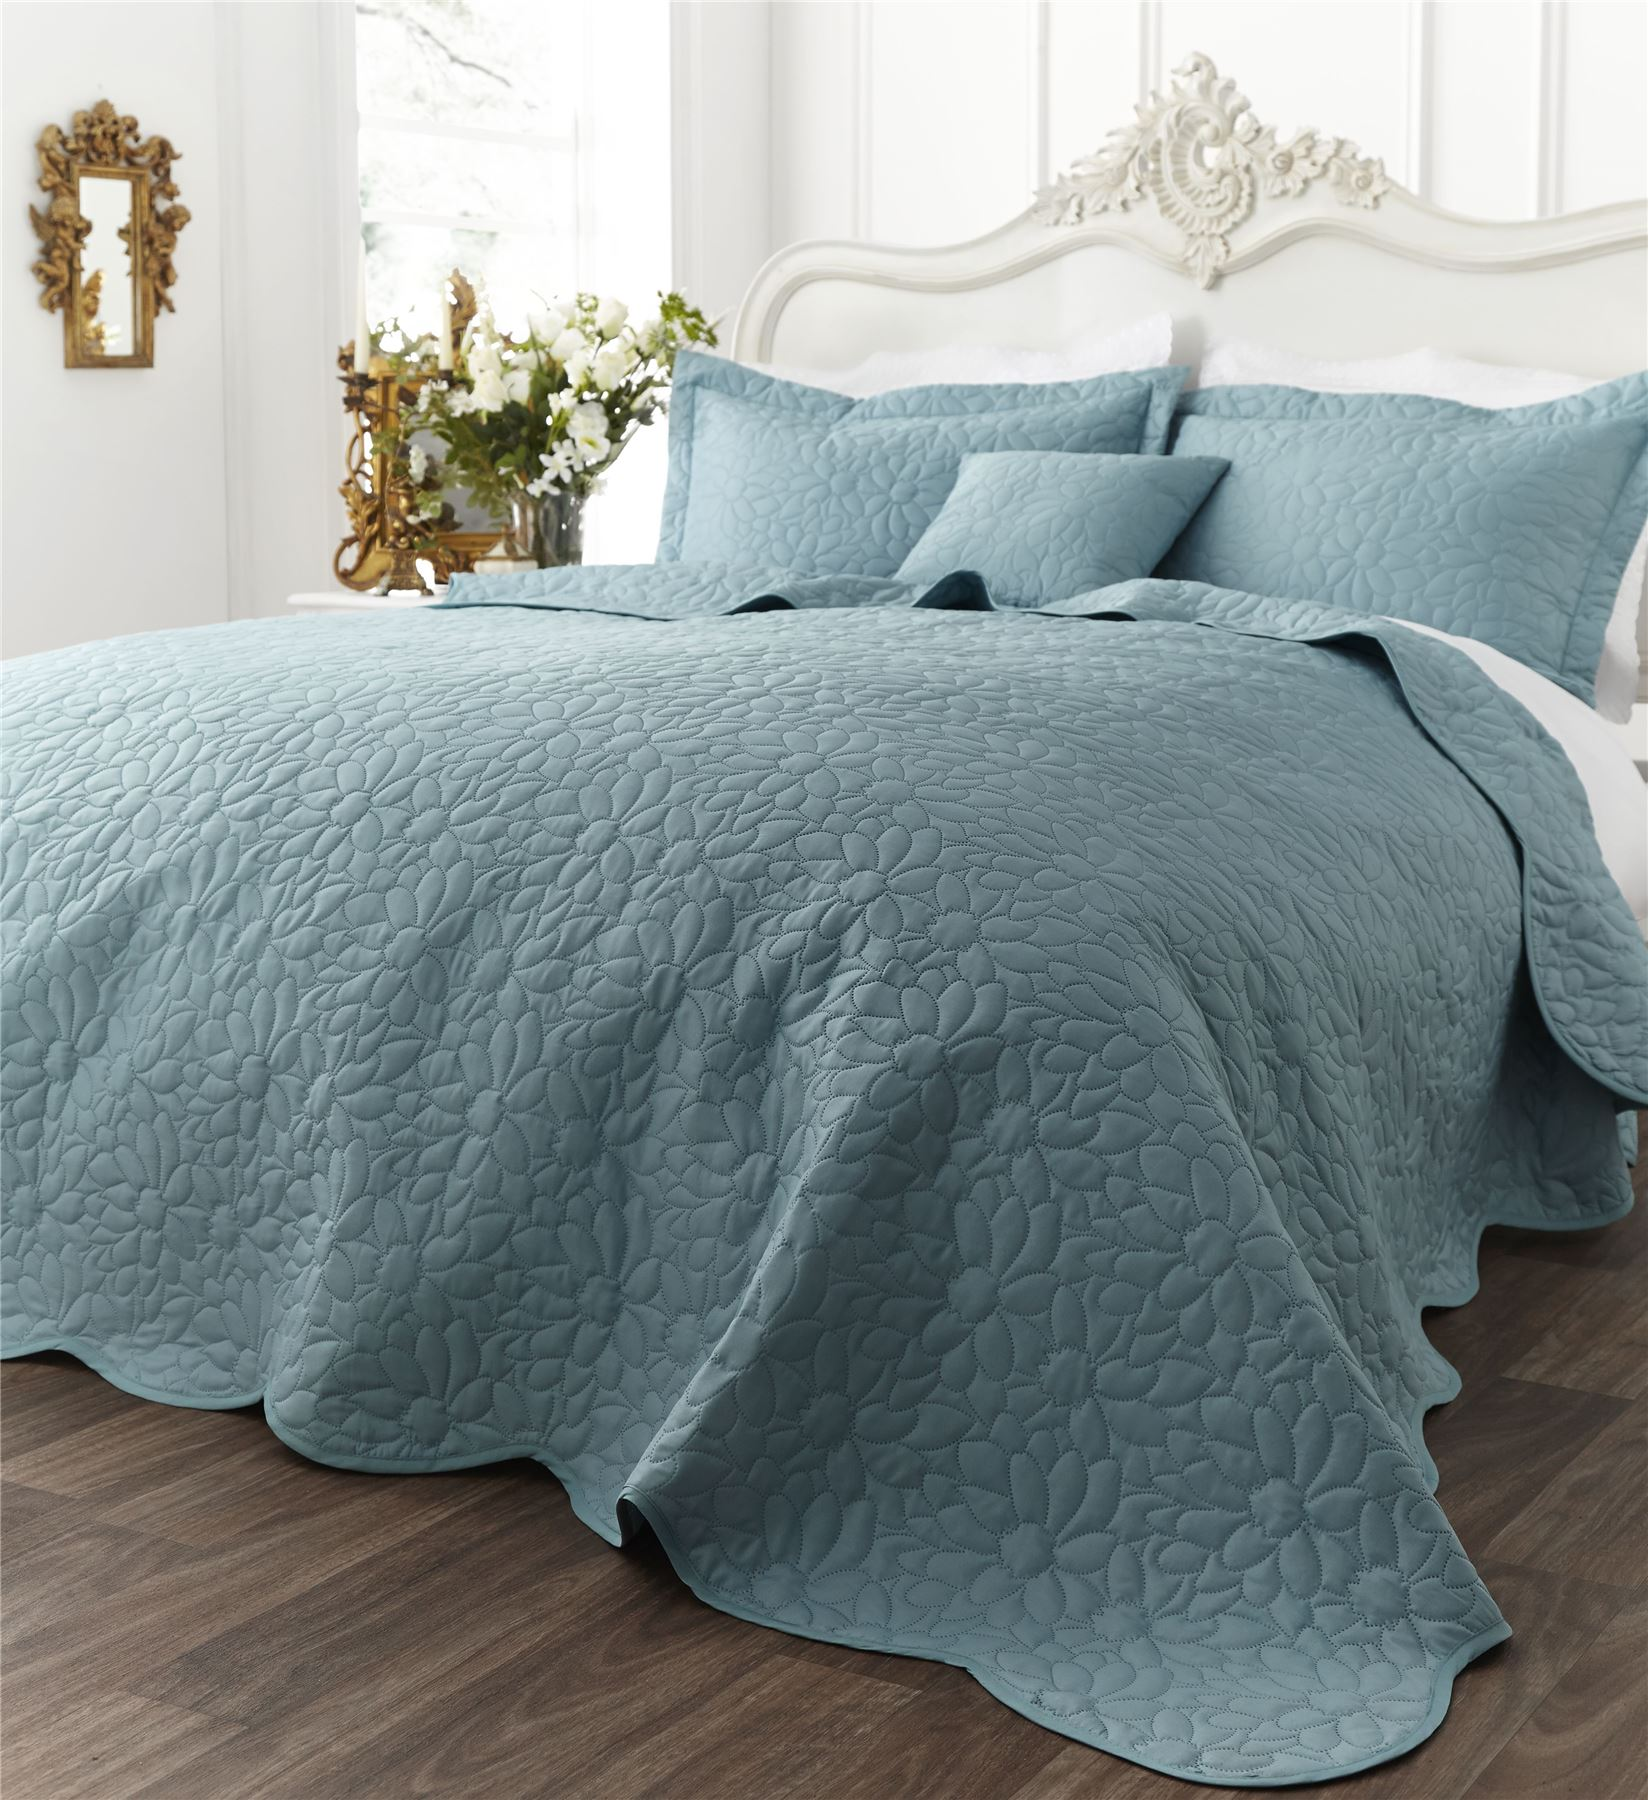 Floral-Geometric-Contemporary-Bedspread-Or-Cushions-Catherine-Lansfield